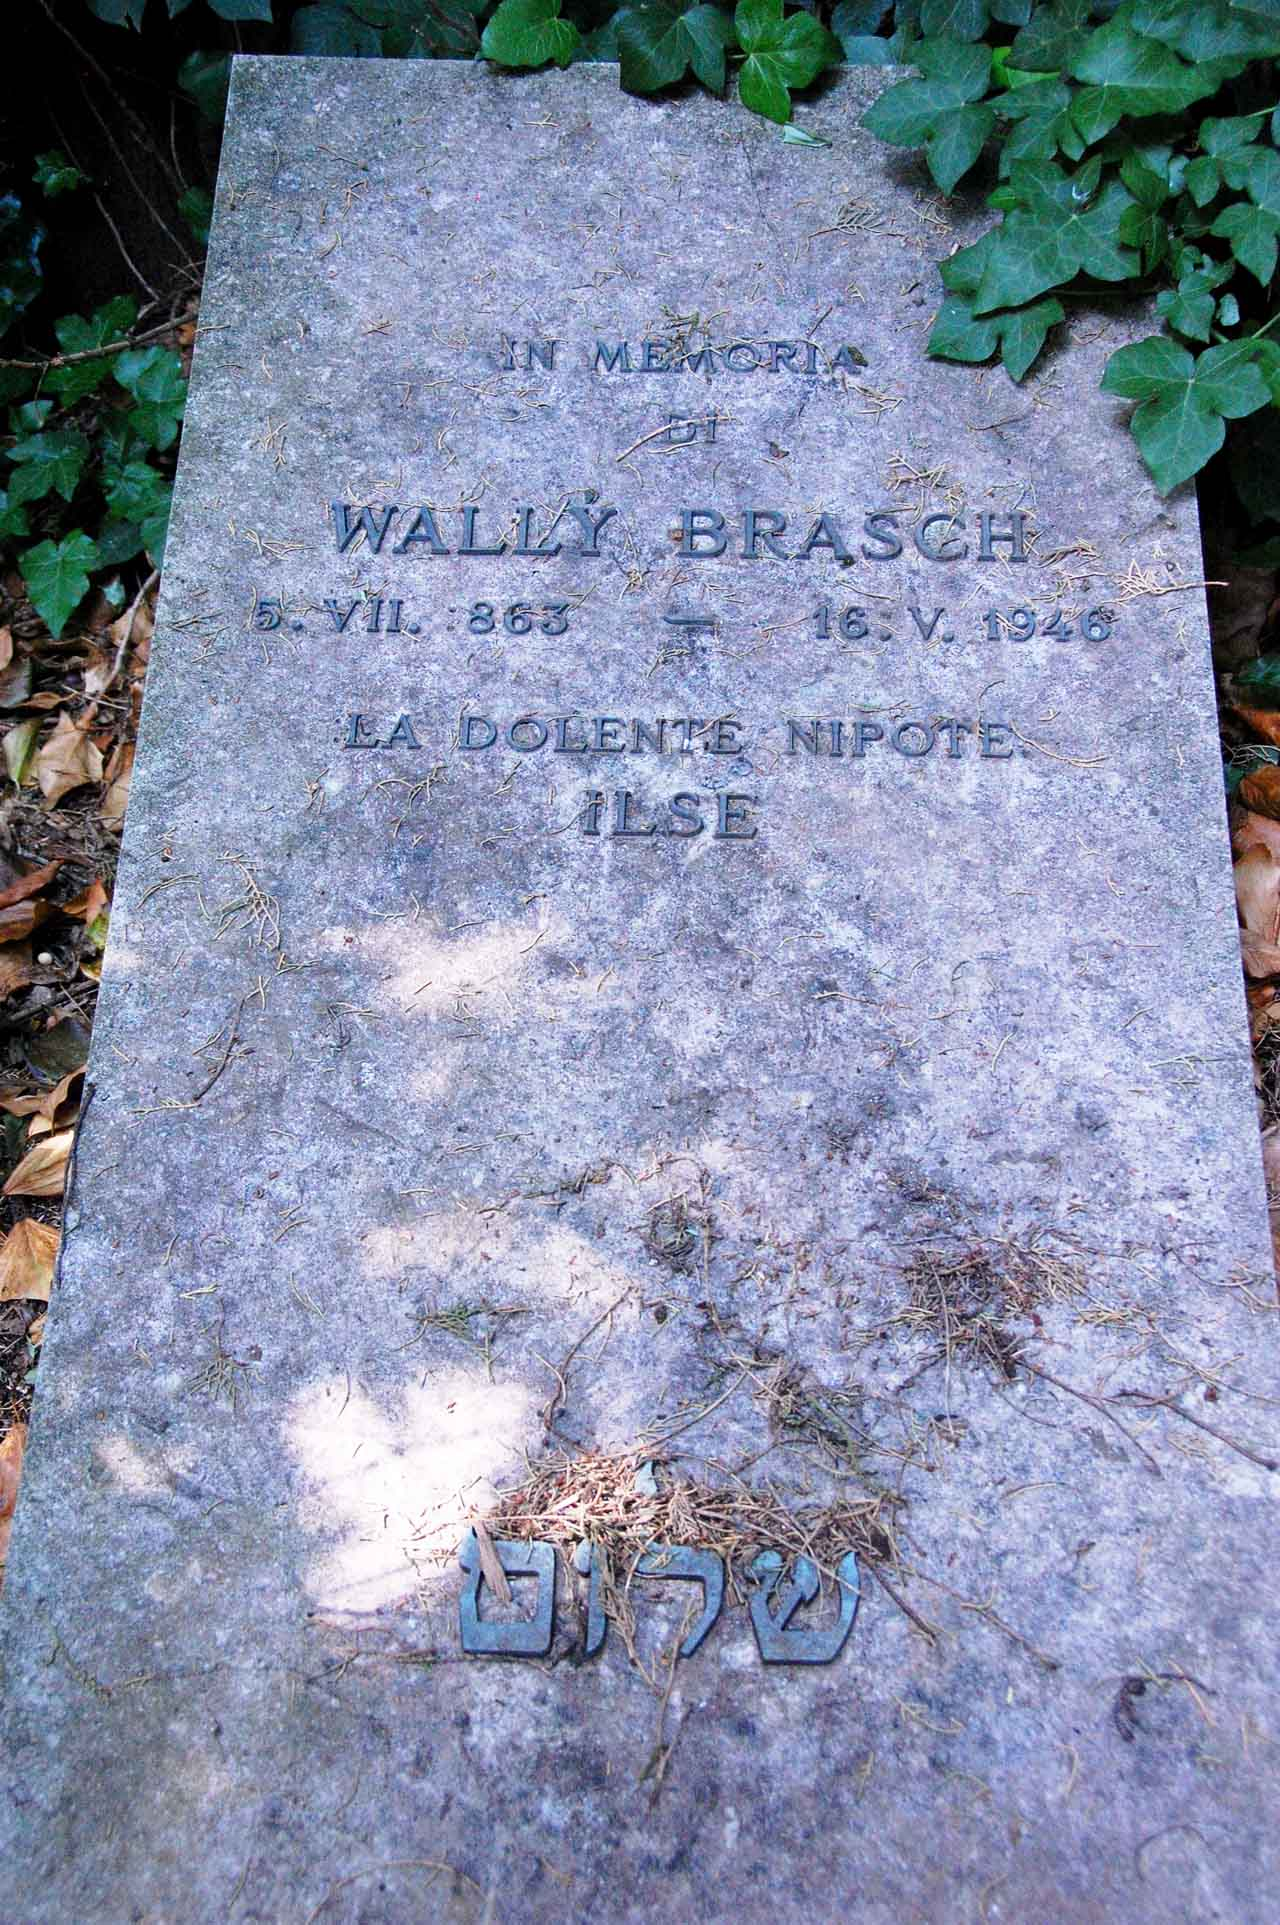 Grabstein Wally Brasch, 16. Mai 1946